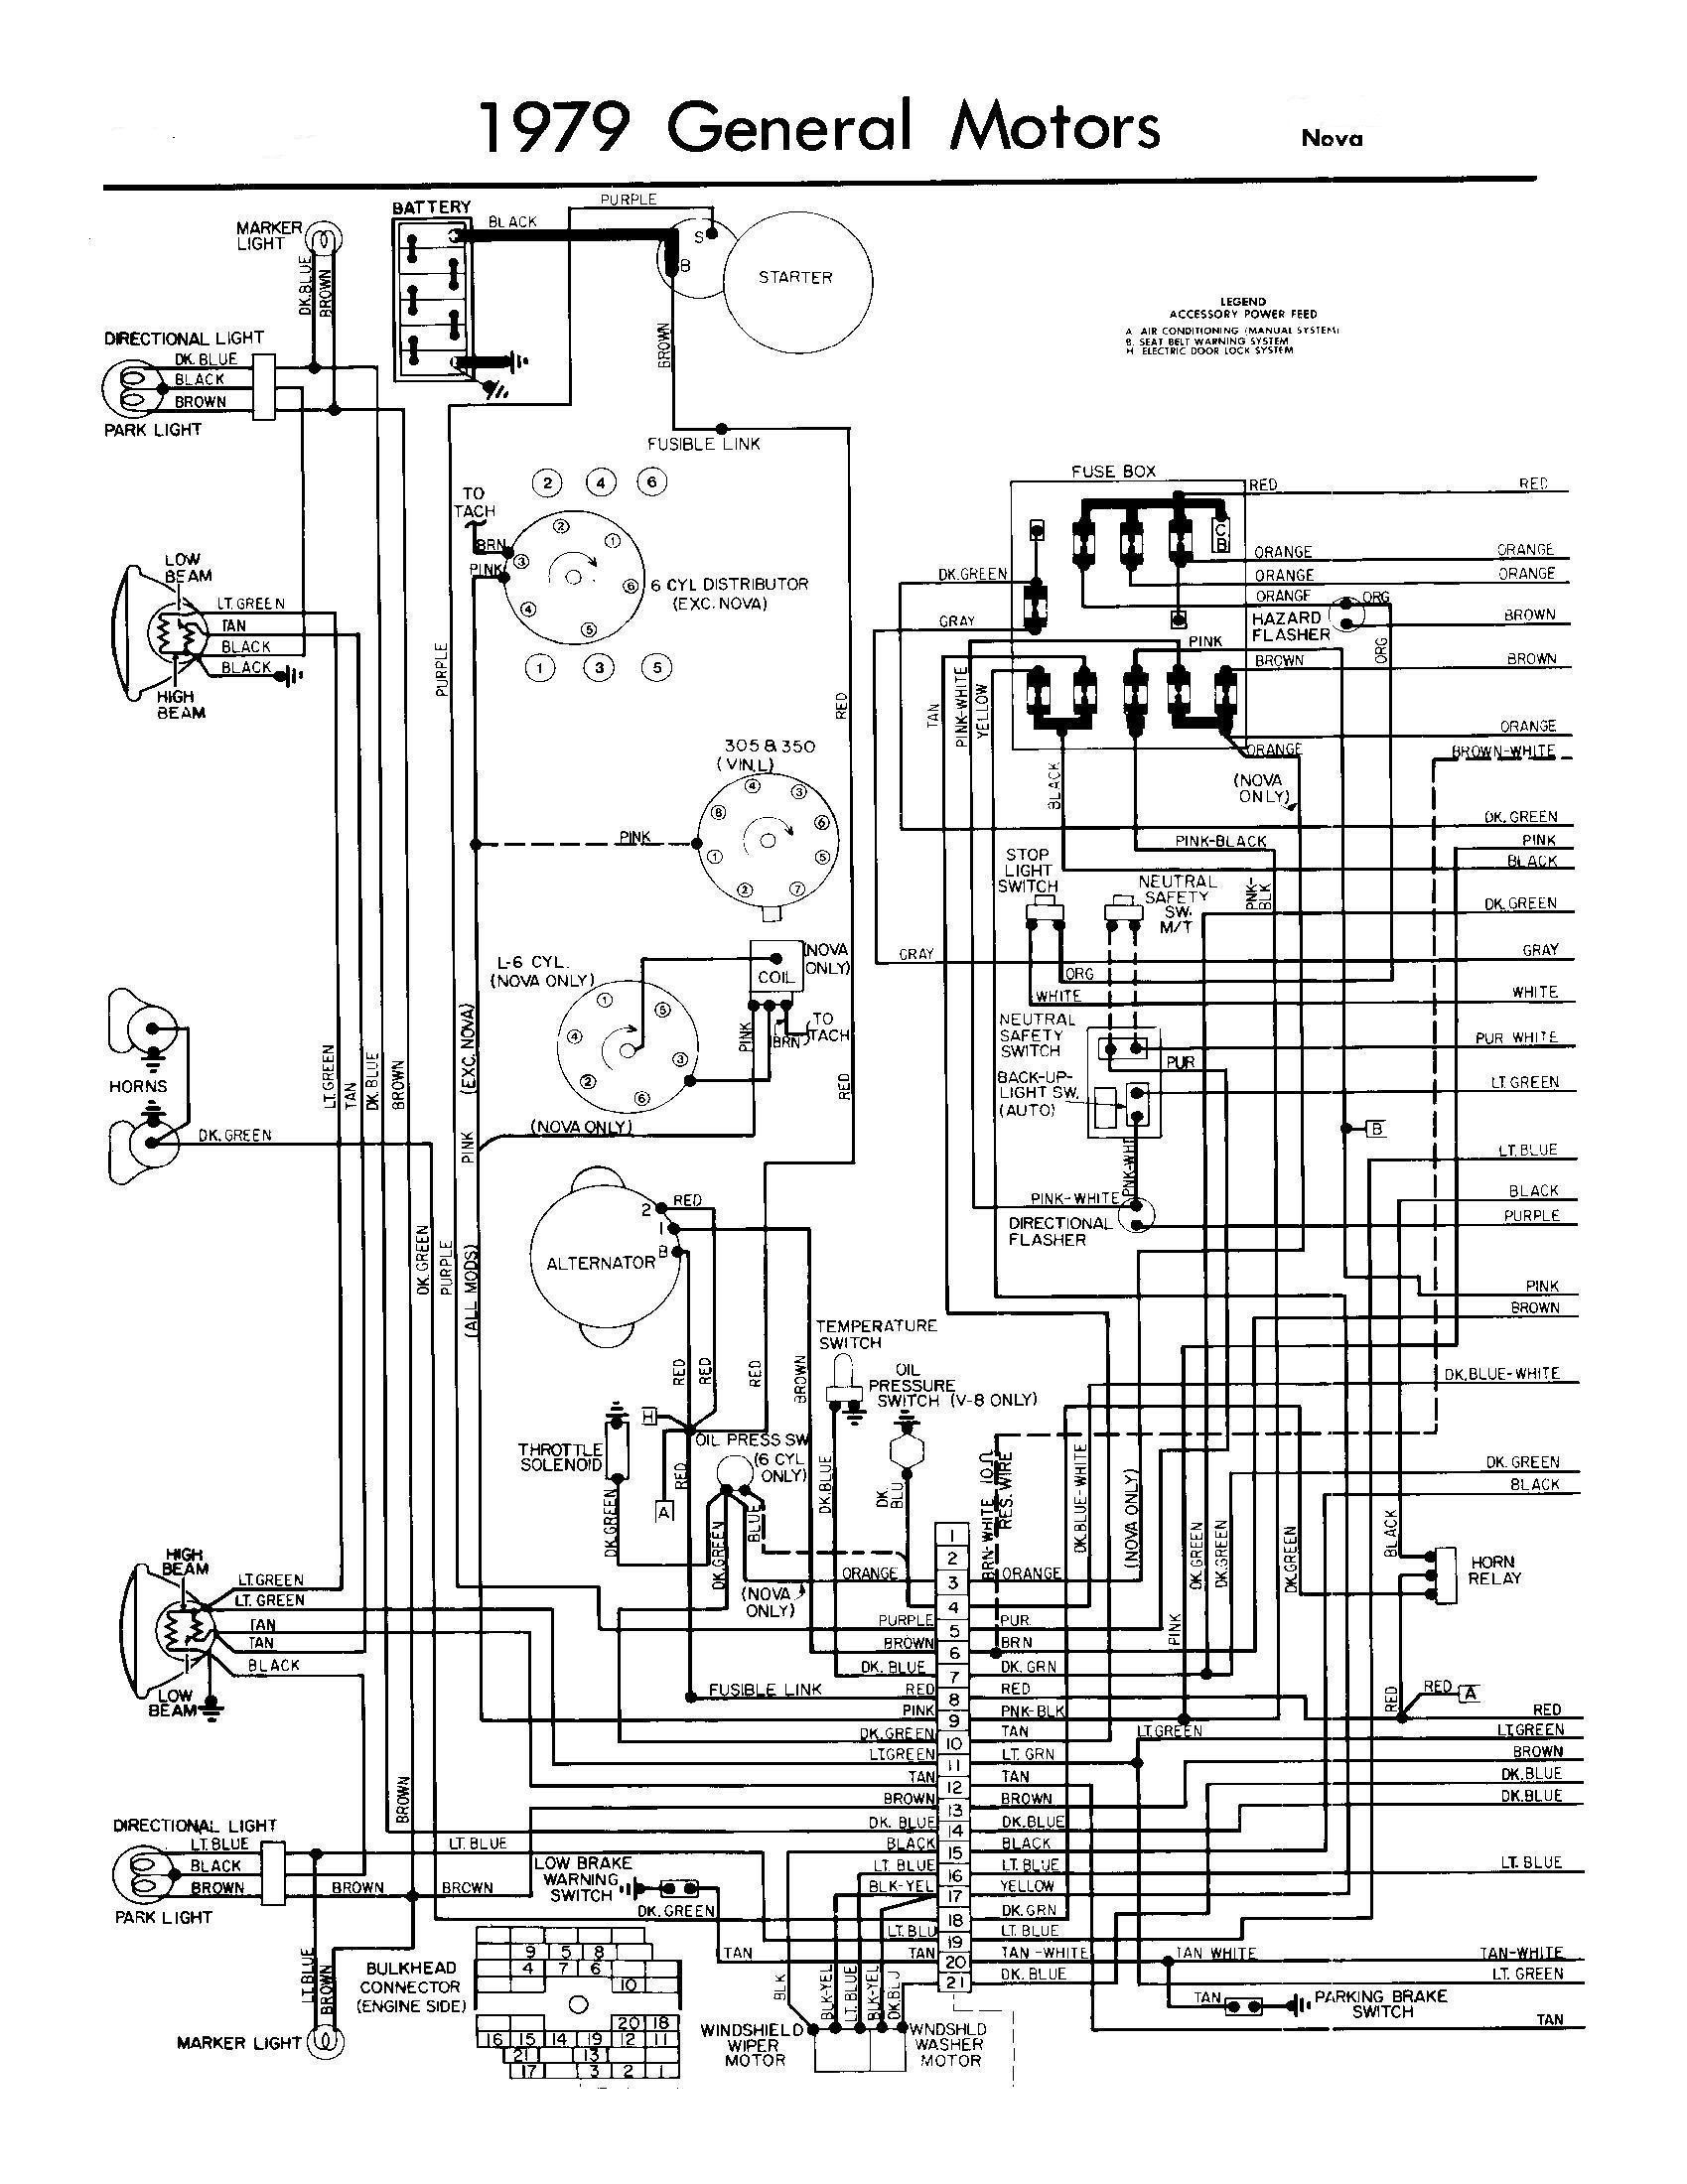 Ignition Schematics Wiring Library Boat Kill Switch Diagram 1982 Gm Trusted Diagrams U2022 Chevy Truck 1979